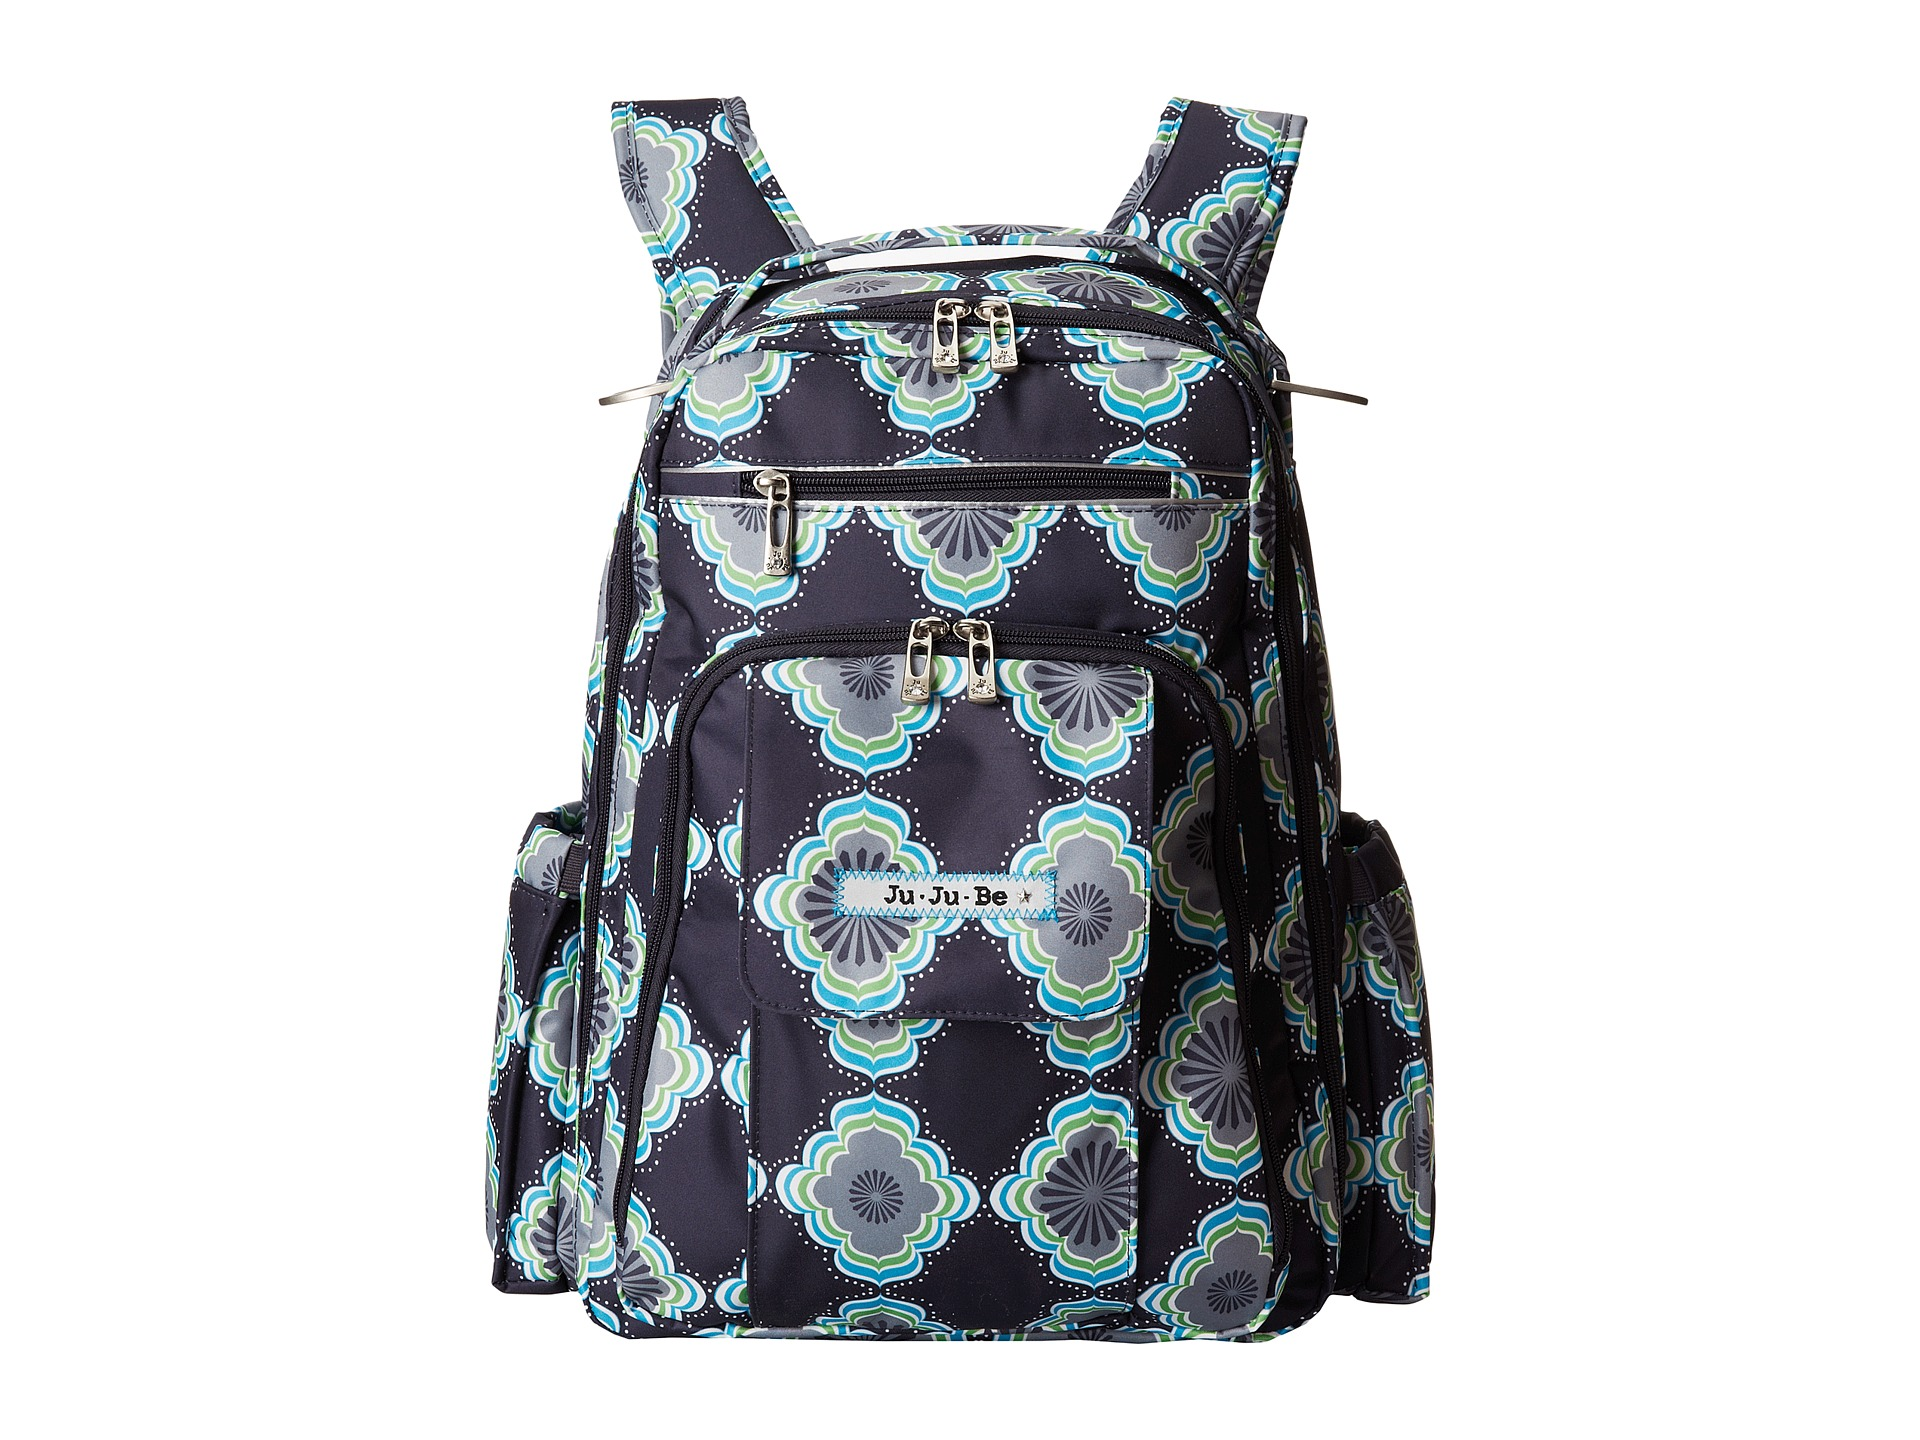 ju ju be be right back backpack diaper bag free shipping both ways. Black Bedroom Furniture Sets. Home Design Ideas